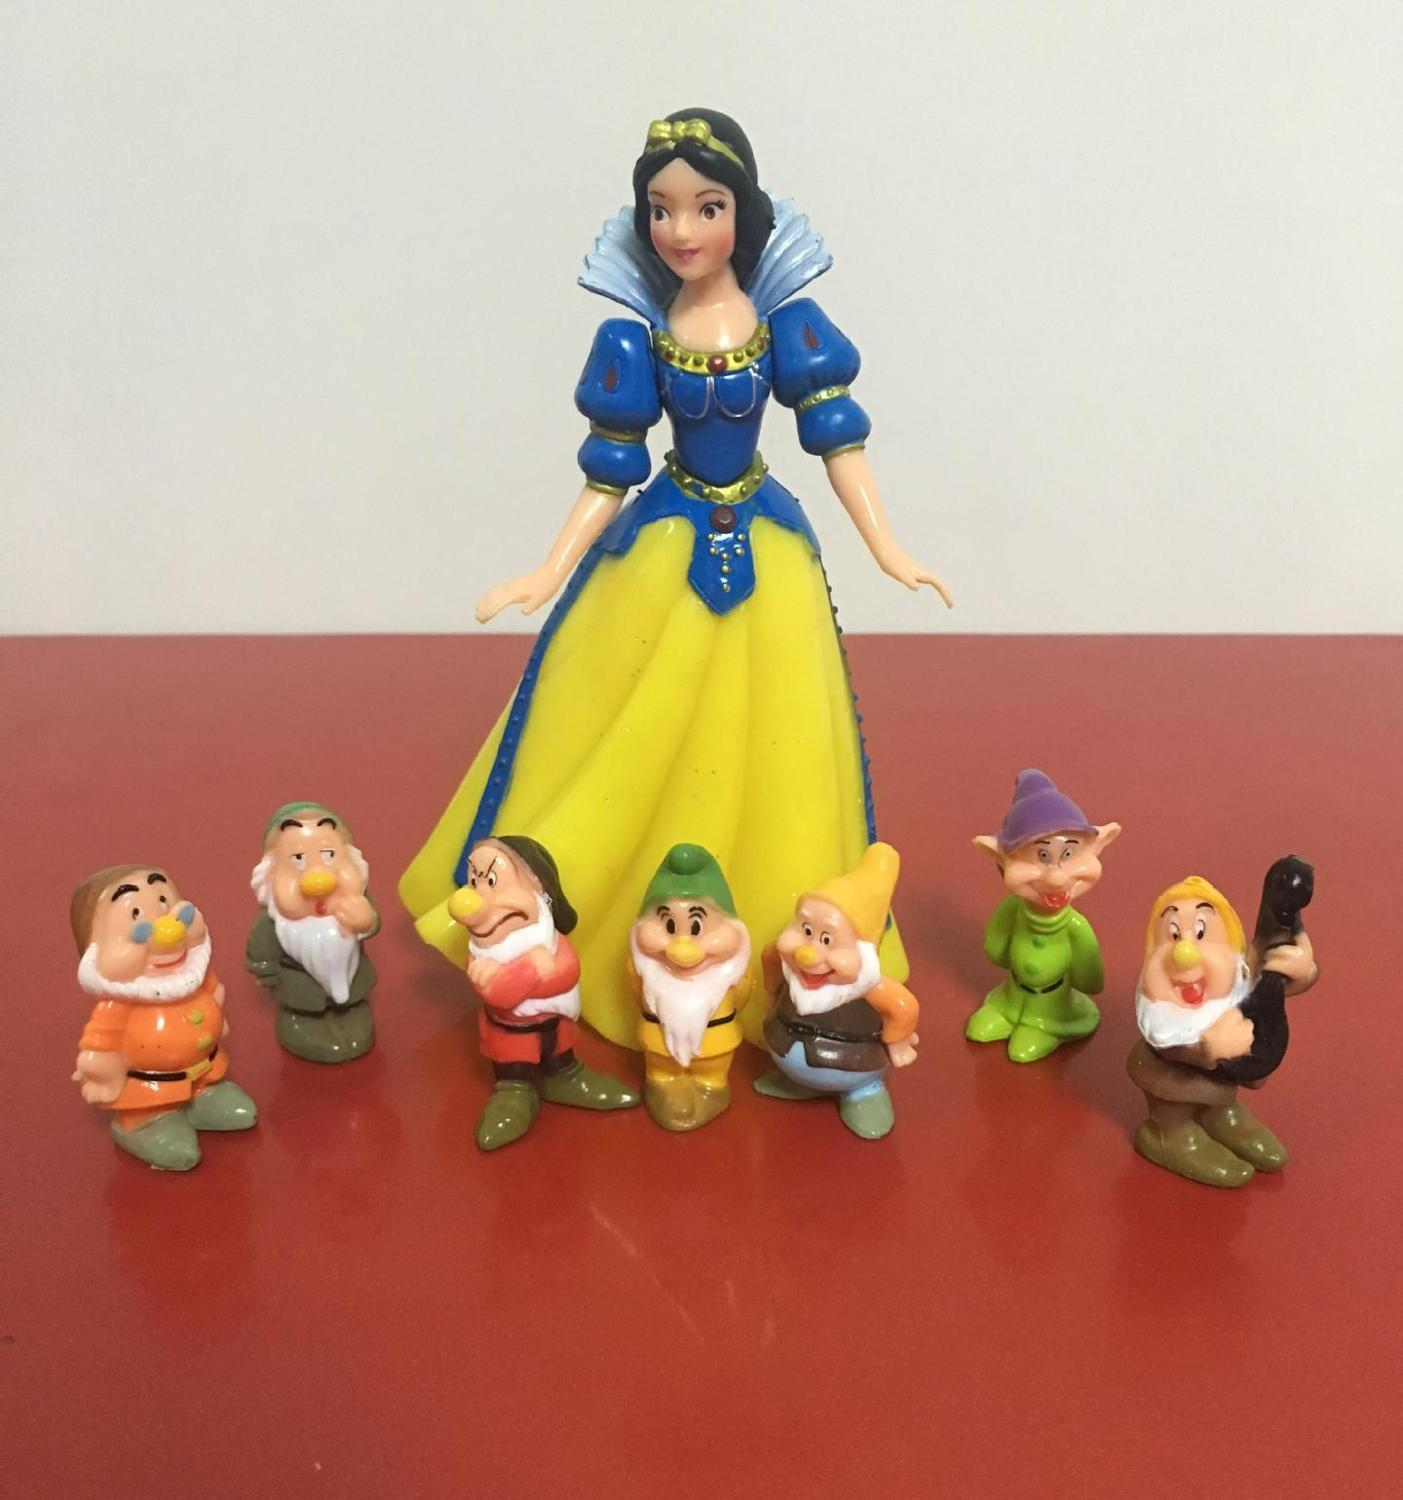 Fashionable White Princess and Seven Dwarfs Toy Set Toy Dolls Micro Landscape Animated Toys Live Sample Jewelry Toys(China)